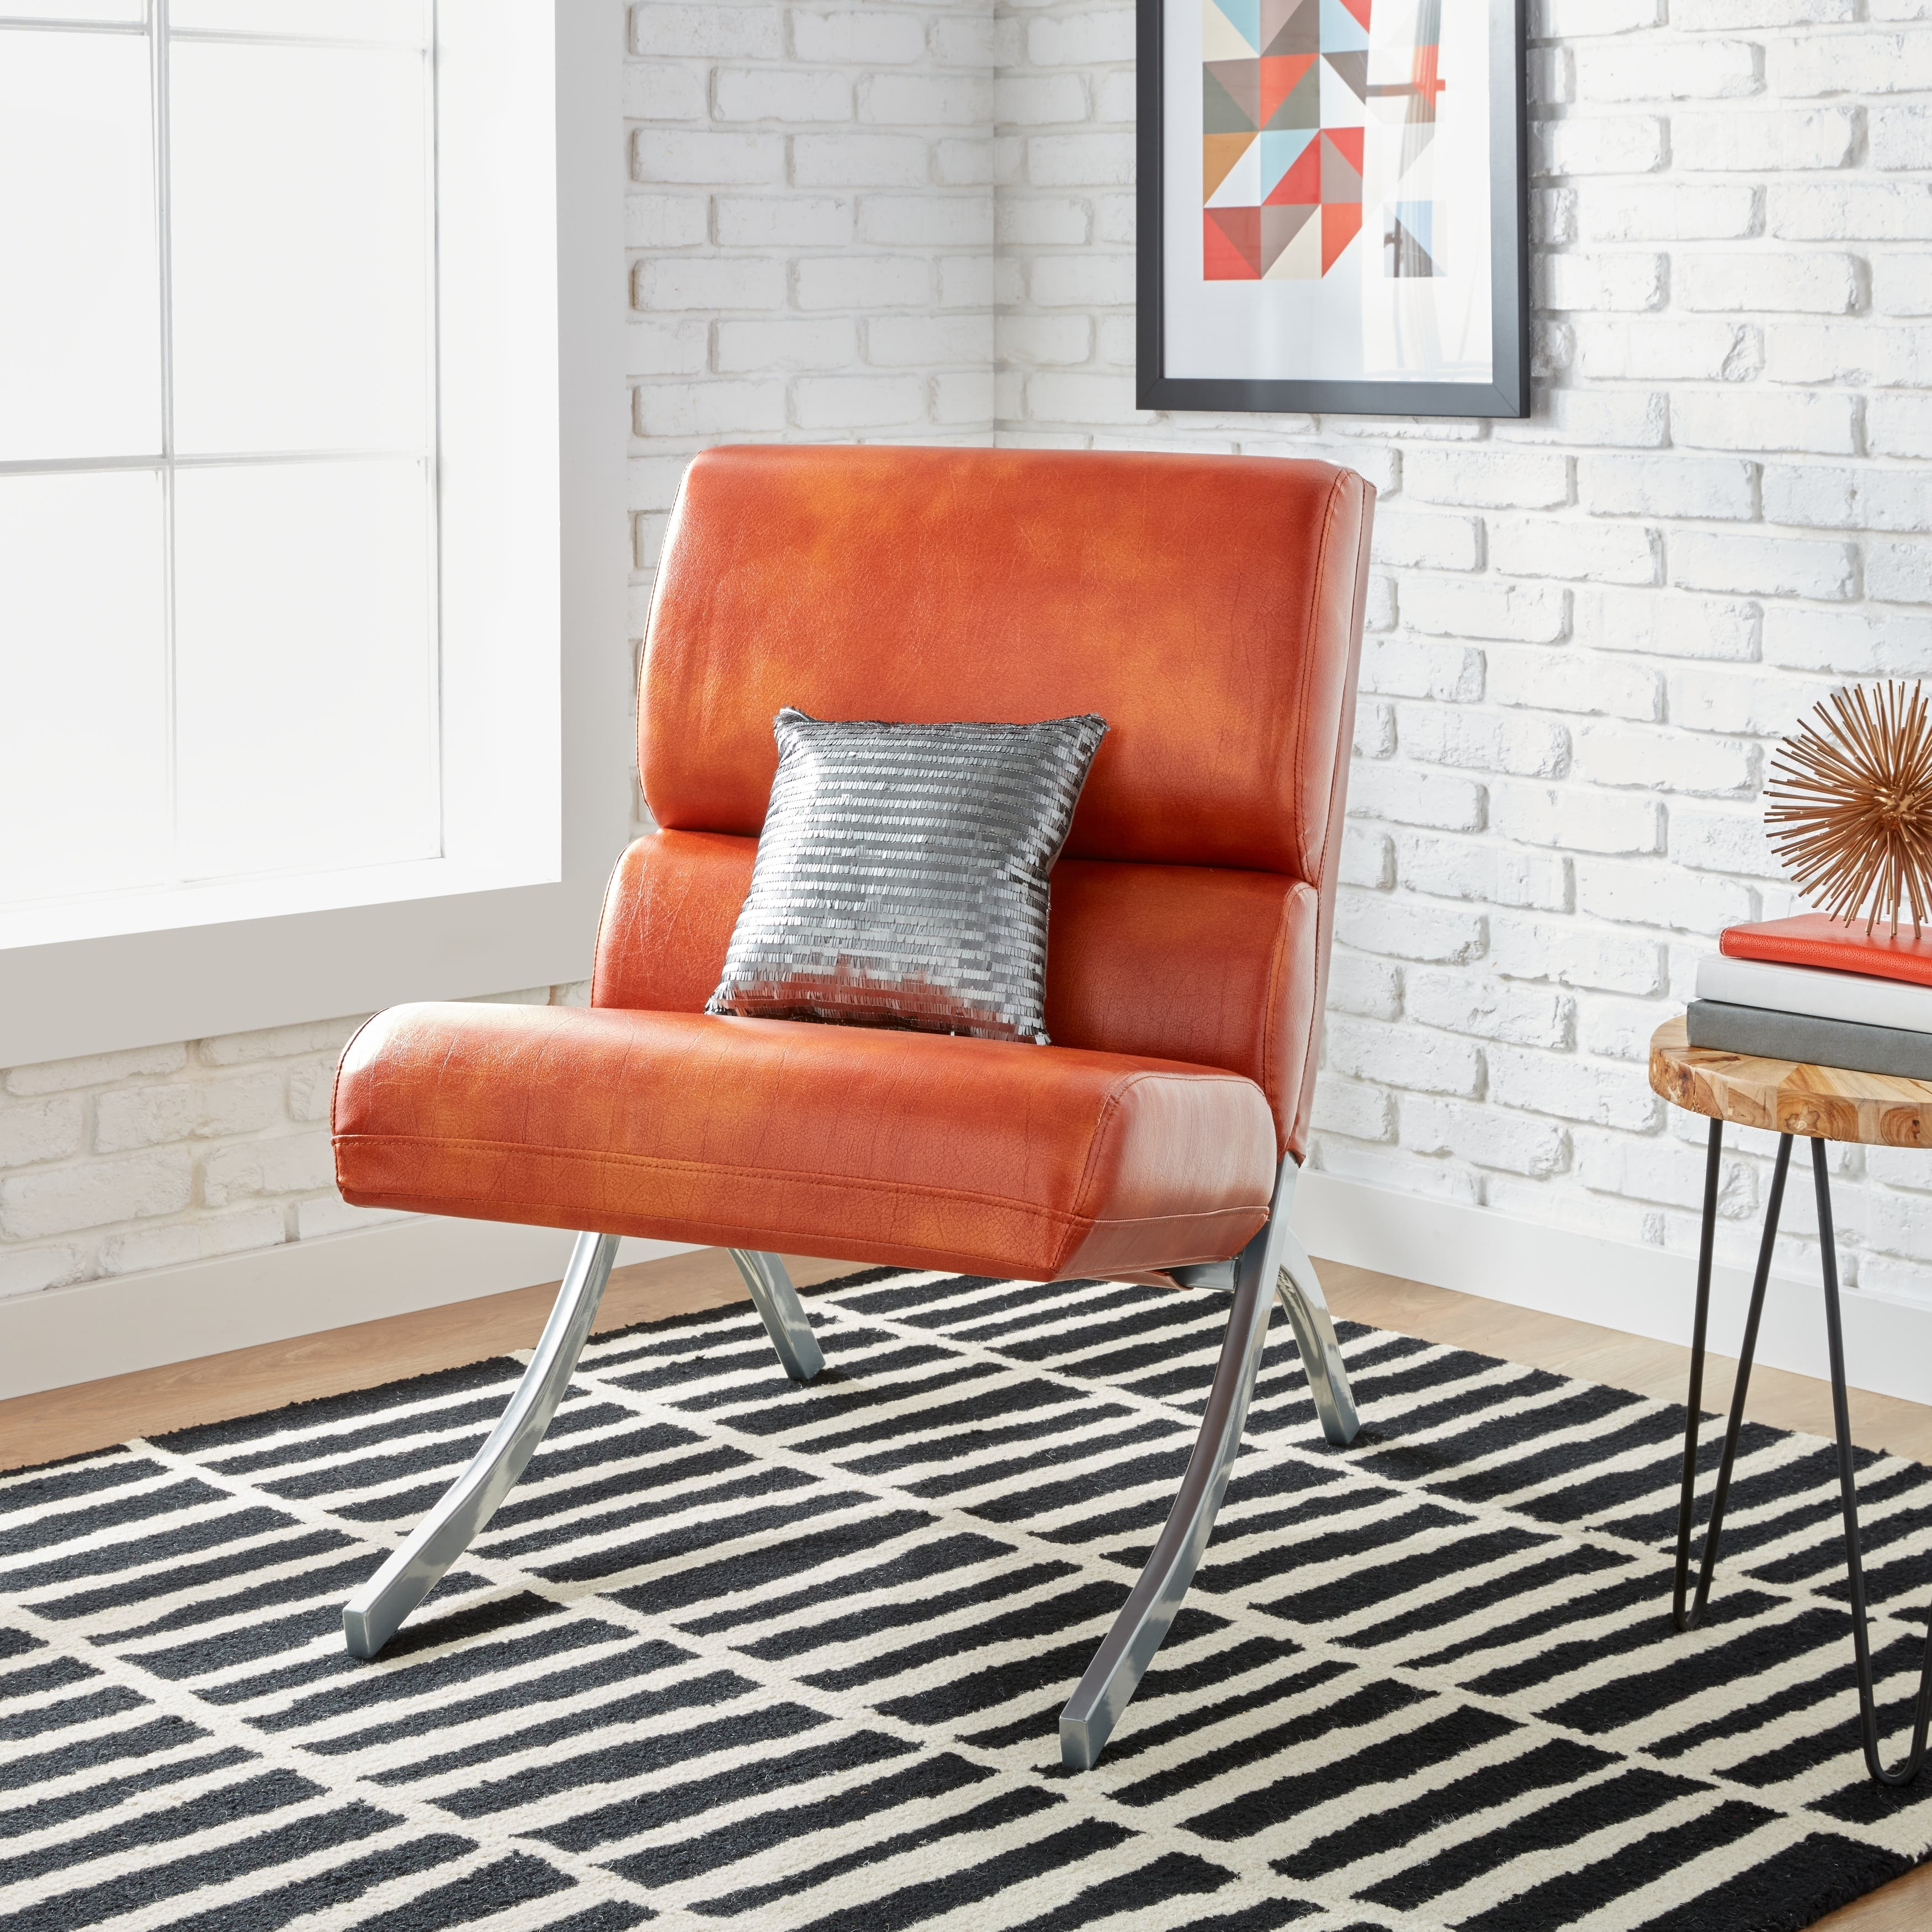 Buy living room chairs online at overstock our best - Best deals on living room furniture ...